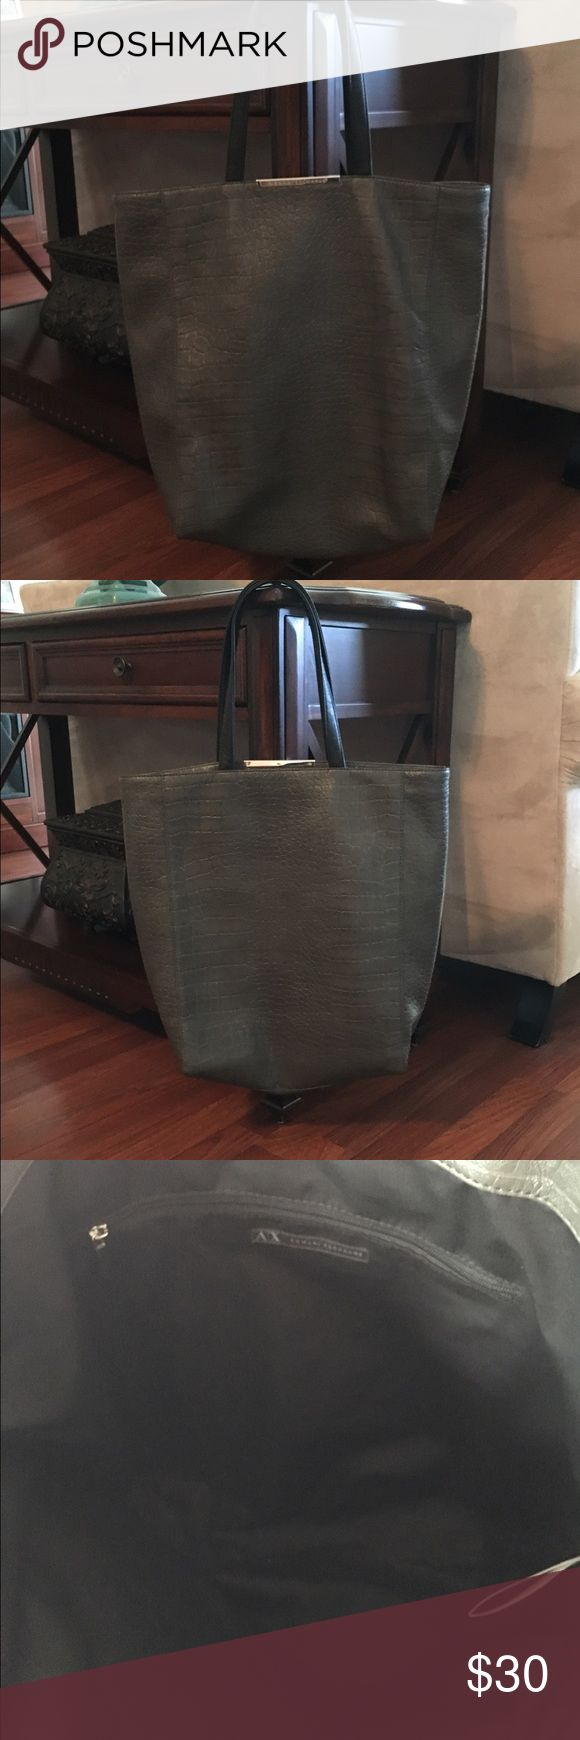 ✨Armani Exchange✨ Gray Tote Handbag Used Armani Exchange tote bag.. Great fall color! Great for everyday use for office or school.. *** smoke free home*** Armani Exchange Bags Totes